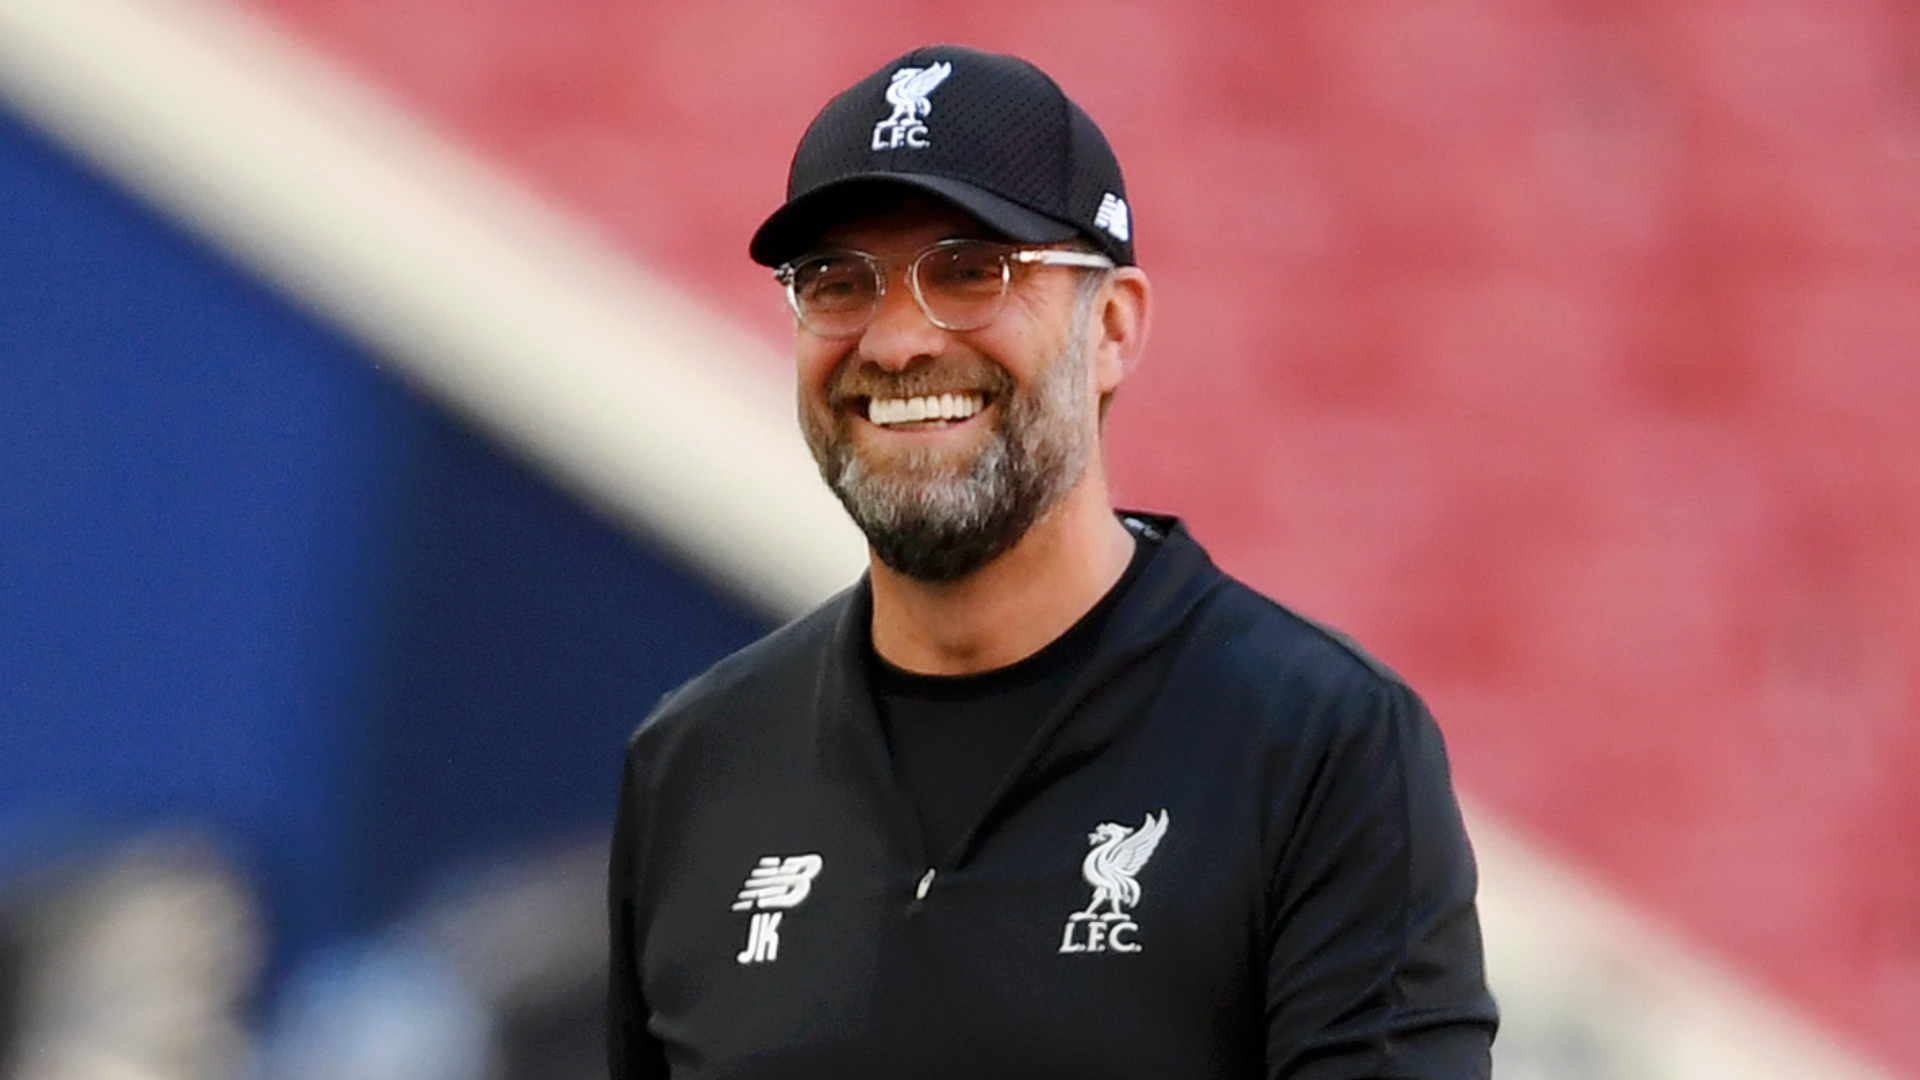 Liverpool are not set for a blockbusting assault on the close-season transfer market, according to manager Jurgen Klopp.